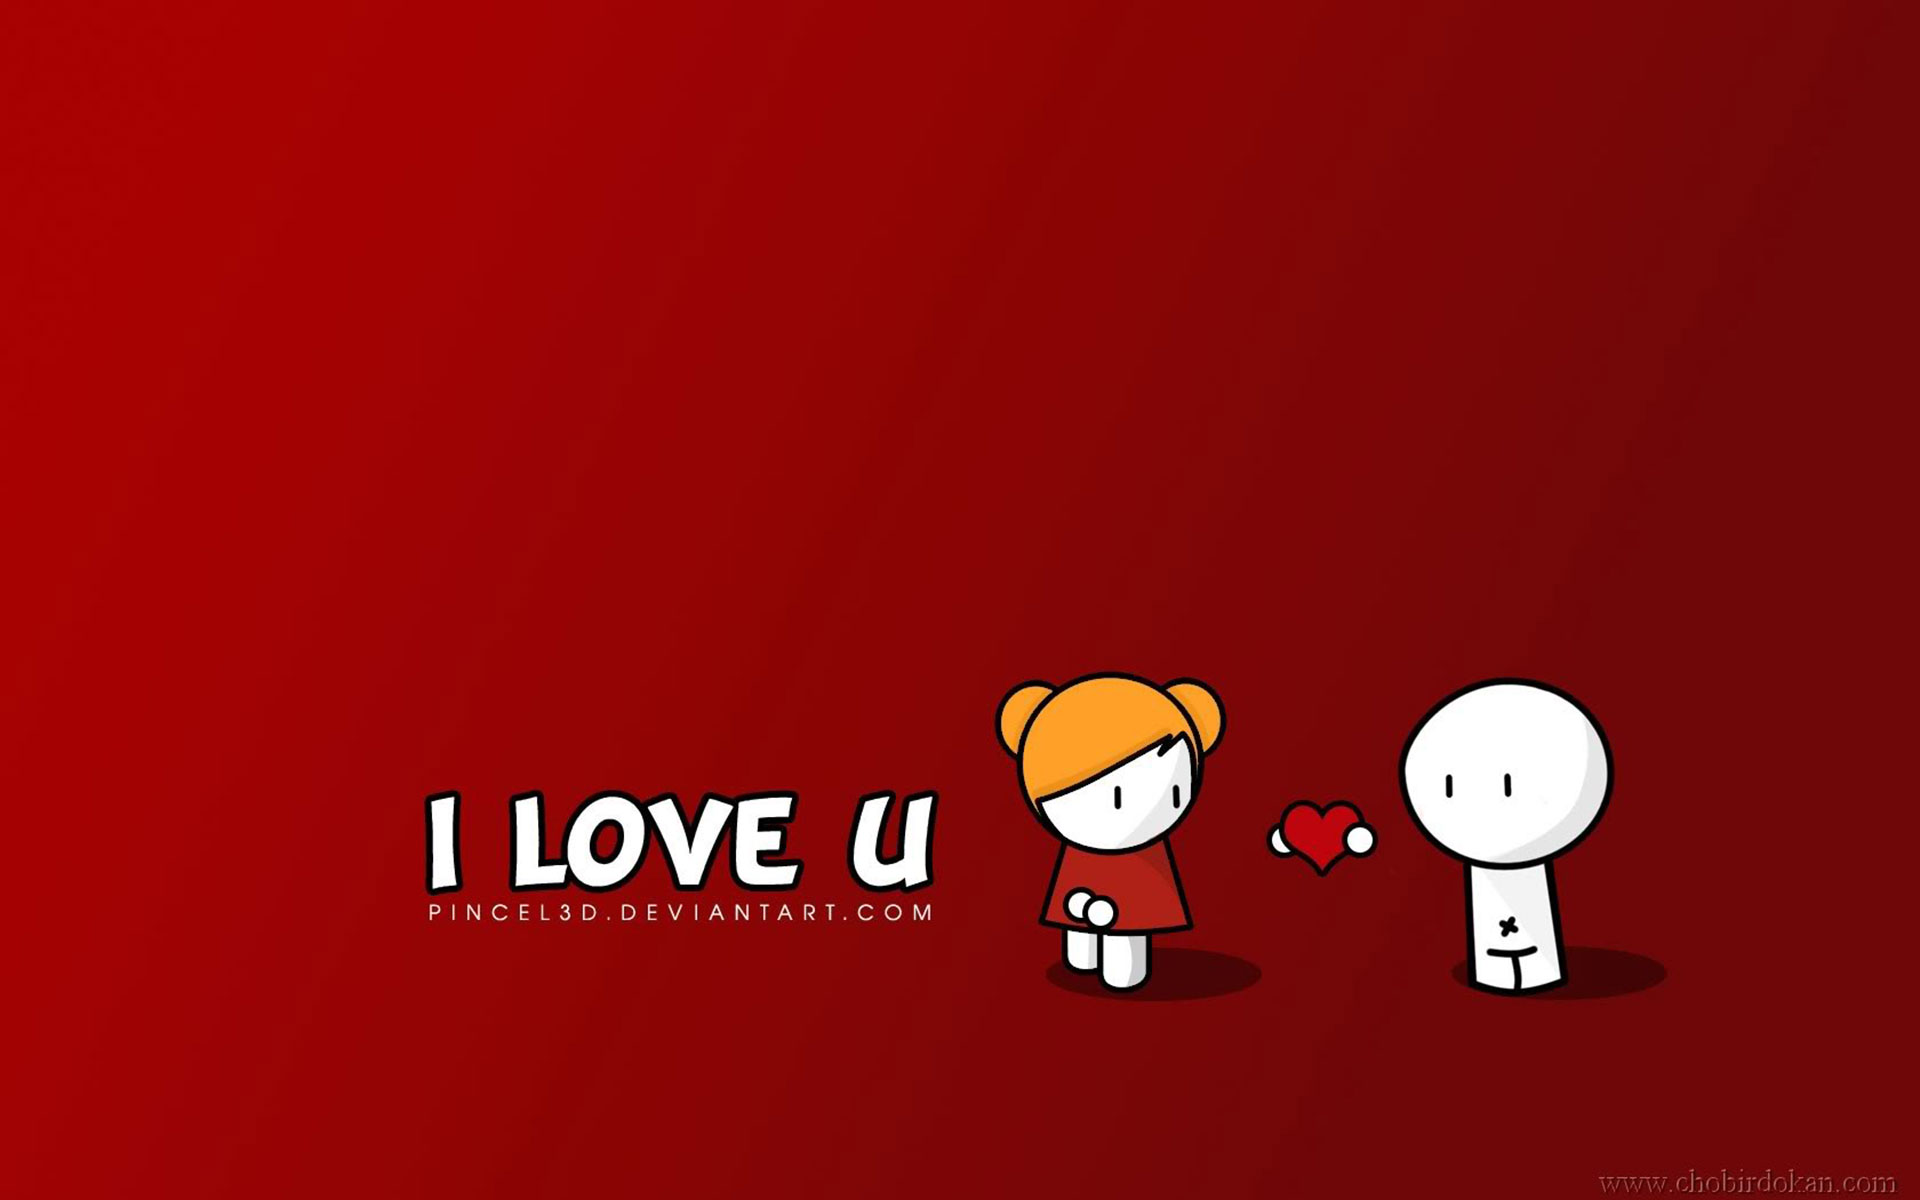 Love U cartoon Wallpaper : 25+ Free HD I Love You Wallpapers cute I Love You Images